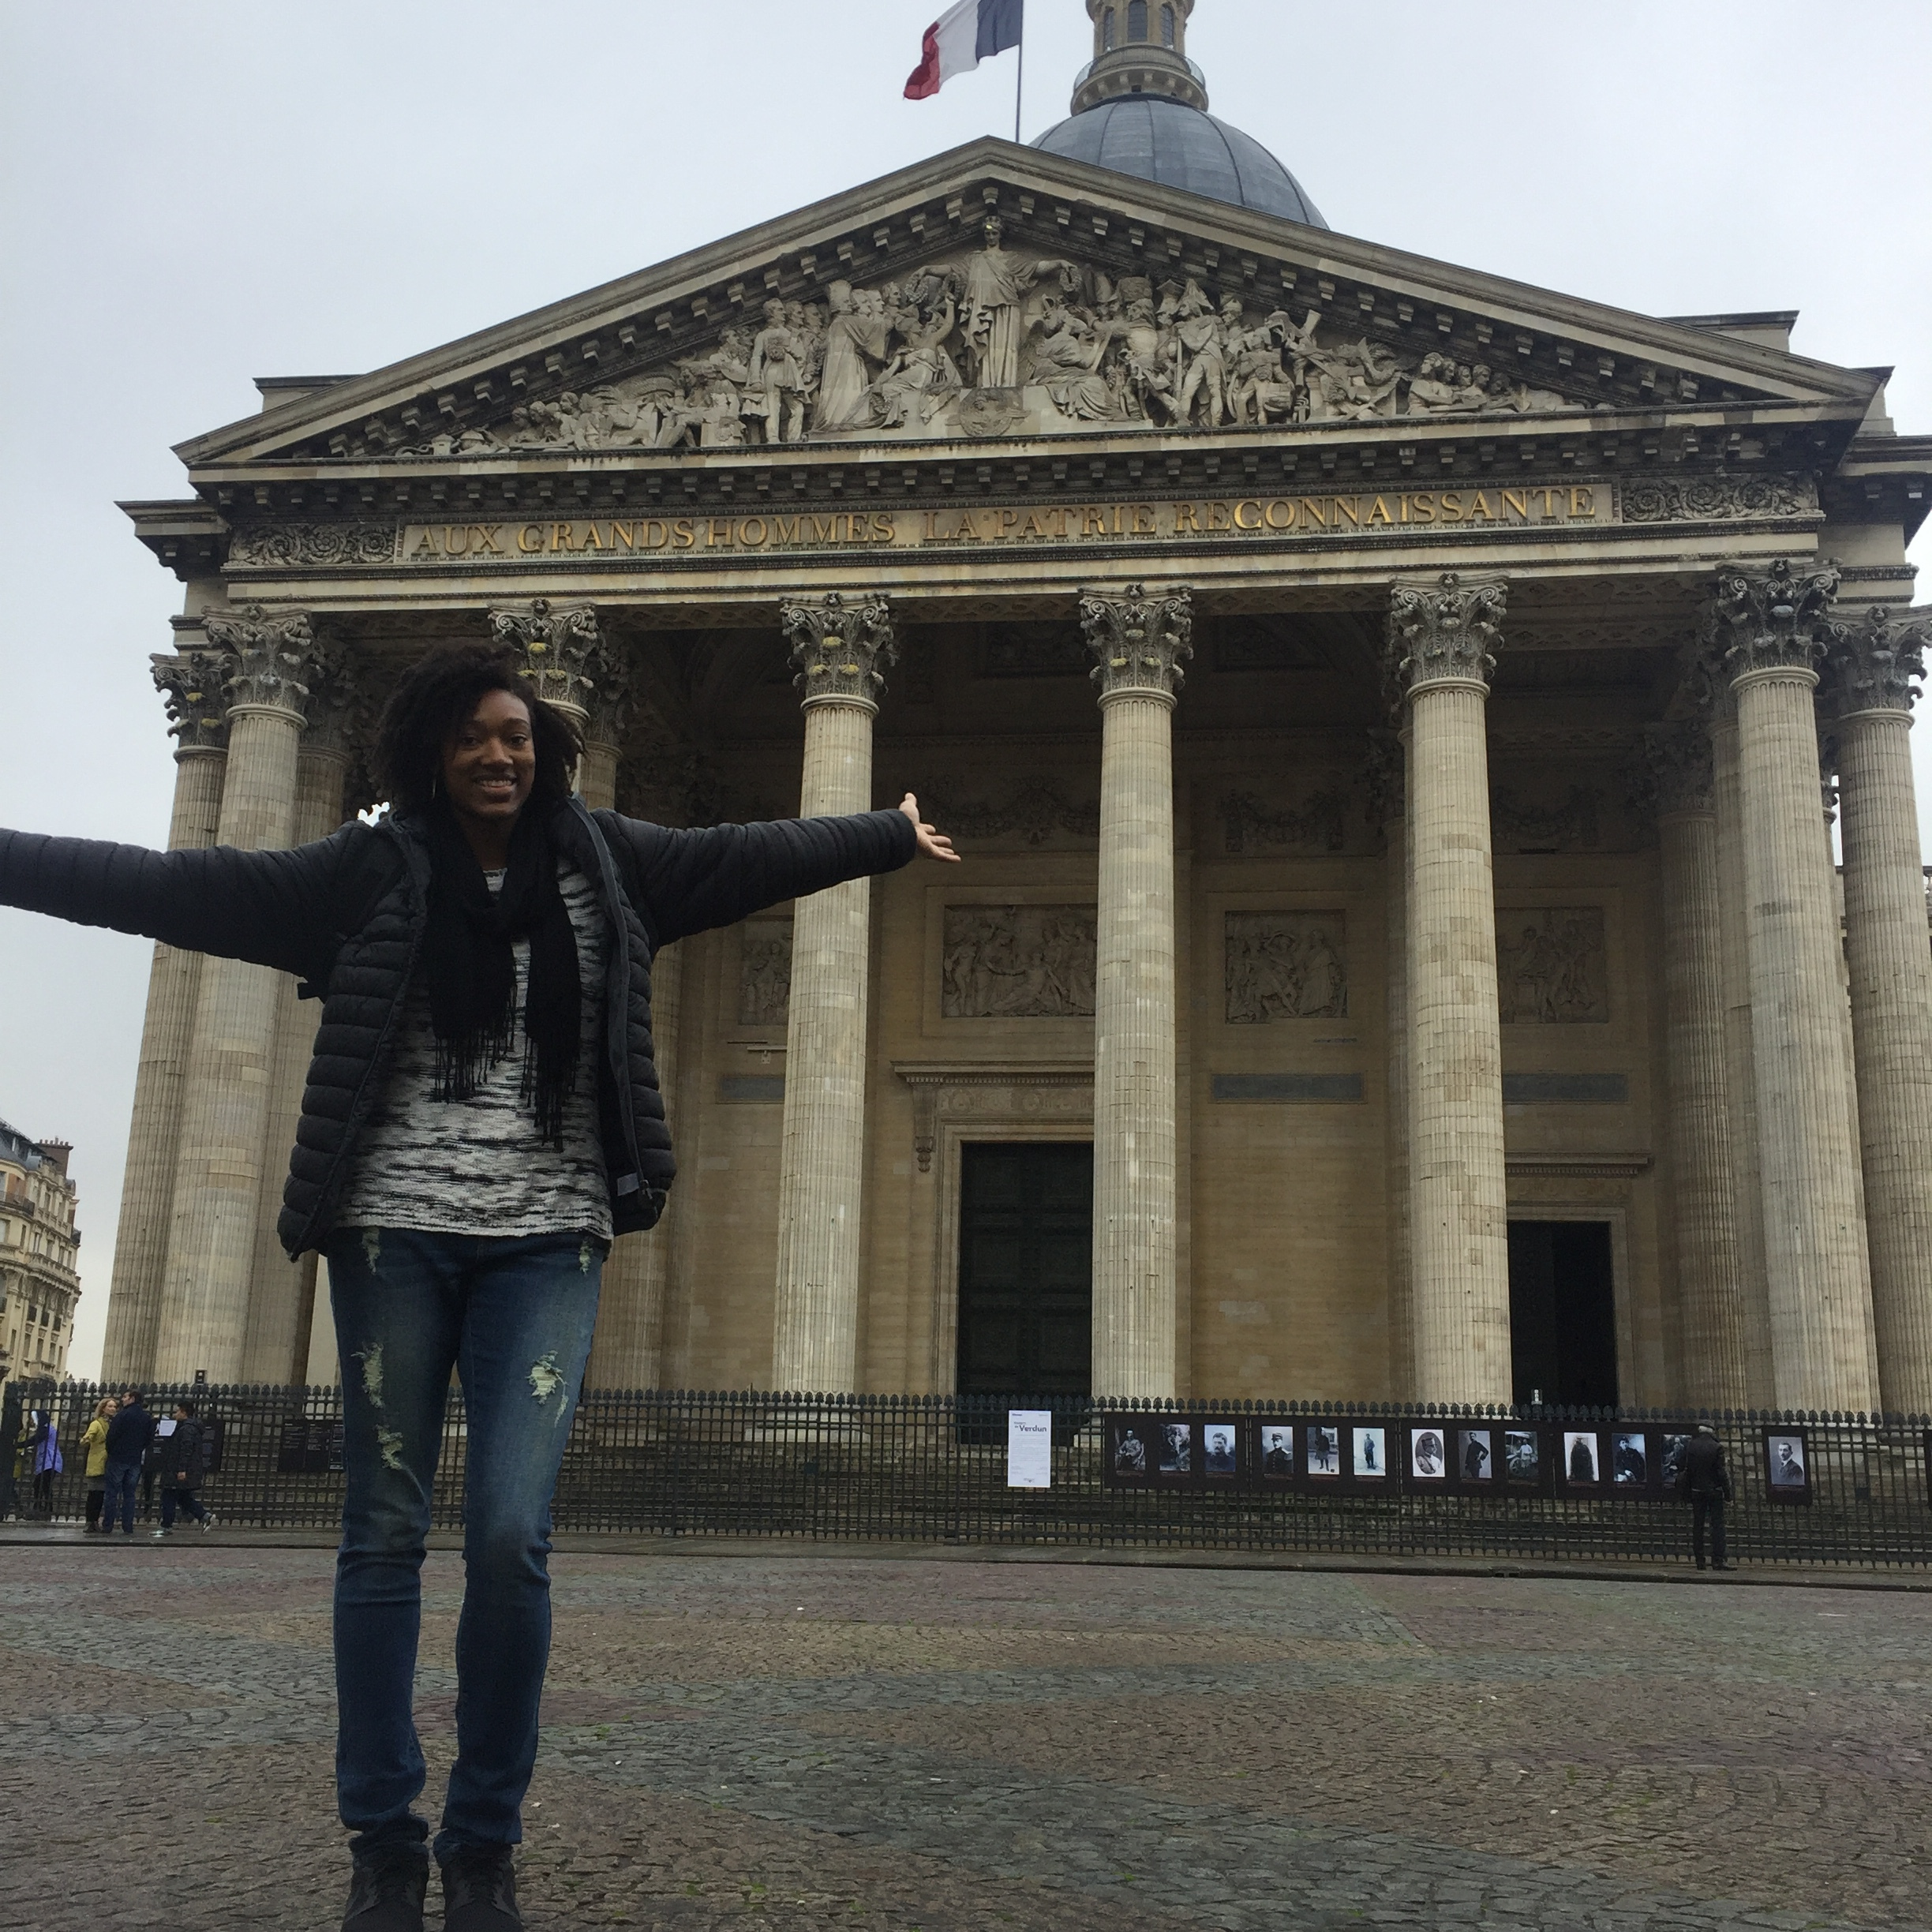 Ladies and gentlemen, The Pantheon! Also rocking my Talltique jeans here!